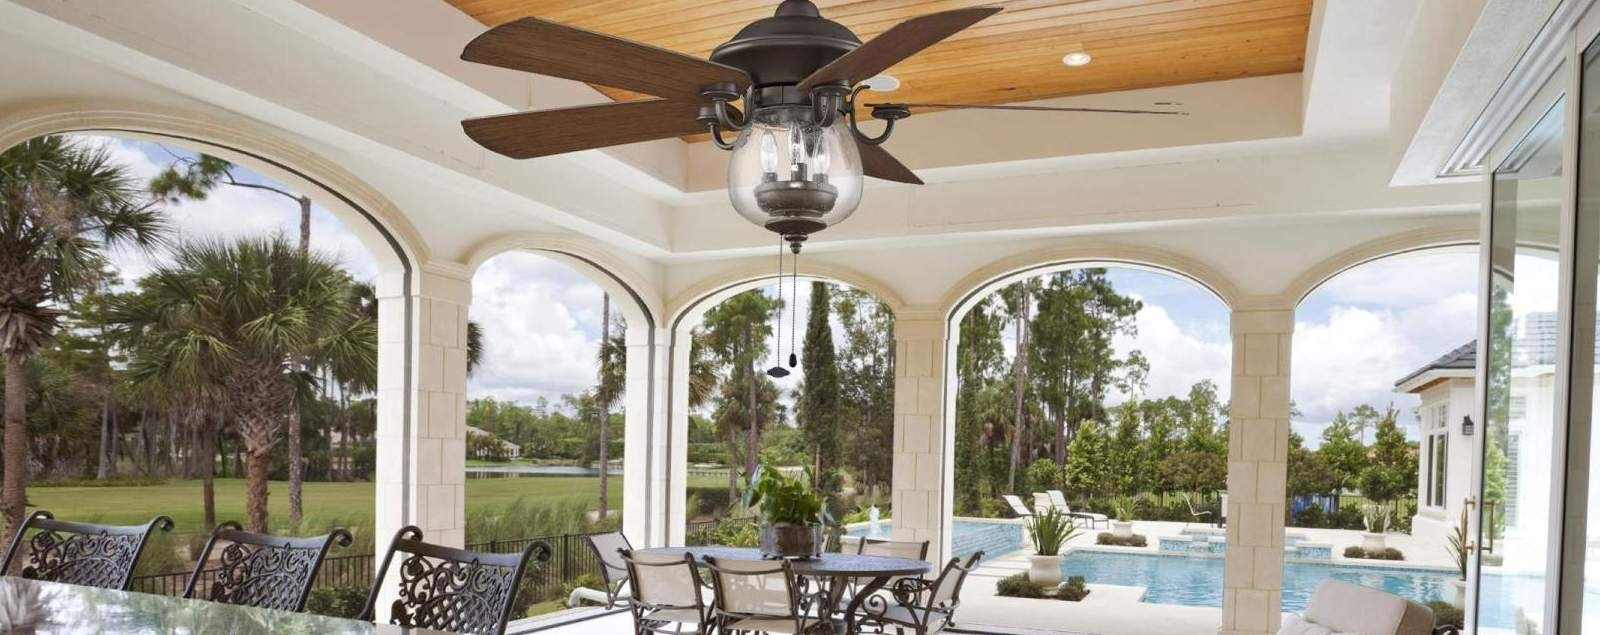 Tropical Design Outdoor Ceiling Fans Pertaining To Fashionable Outdoor Ceiling Fans – Shop Wet, Dry, And Damp Rated Outdoor Fans (View 14 of 20)